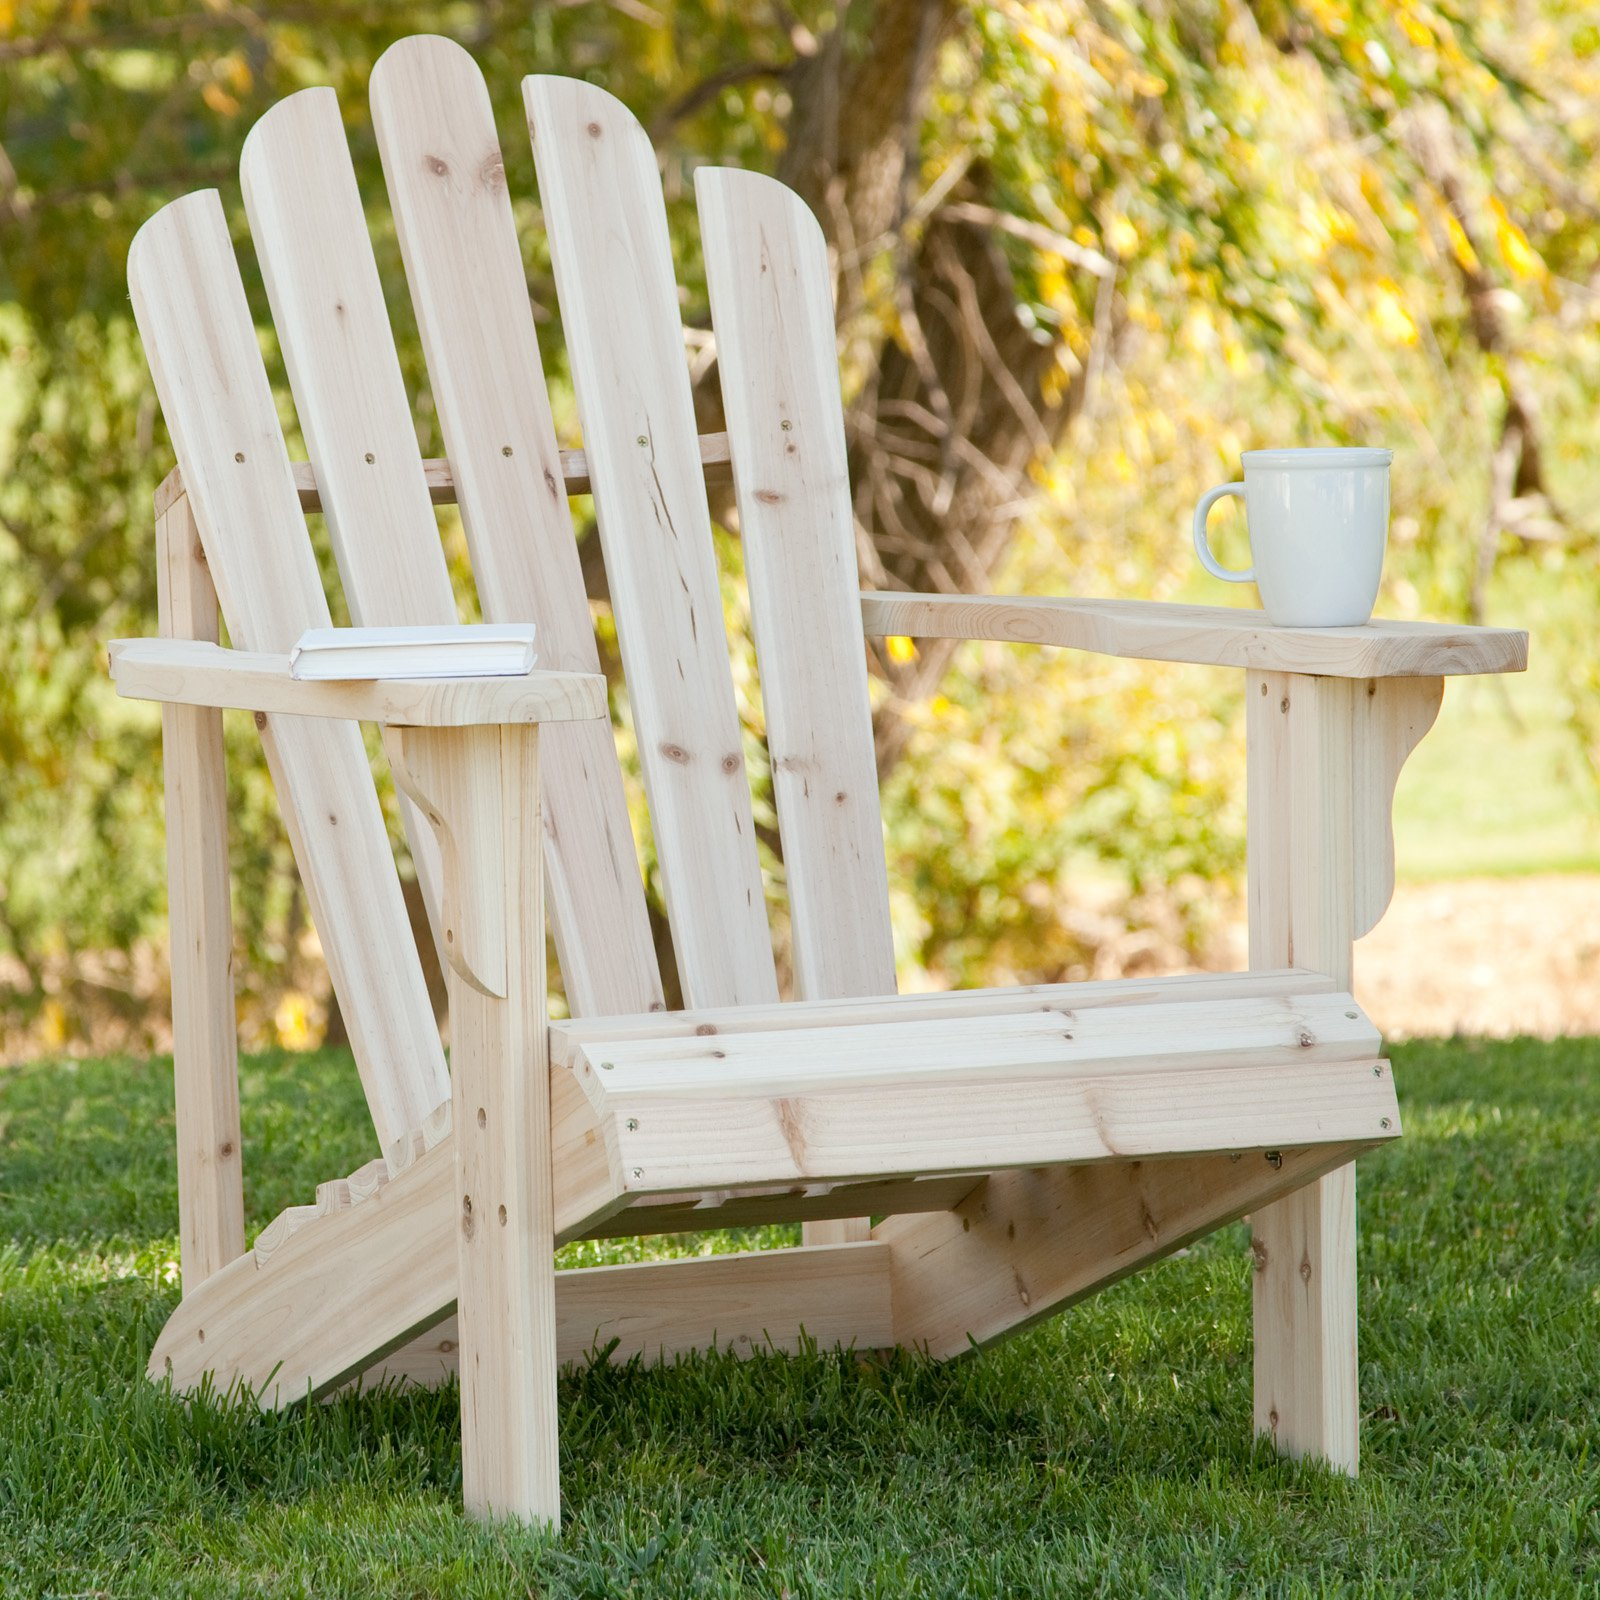 Shine Company Westport Adirondack Chair   Natural   Walmart com. Adirondack Furniture Company. Home Design Ideas